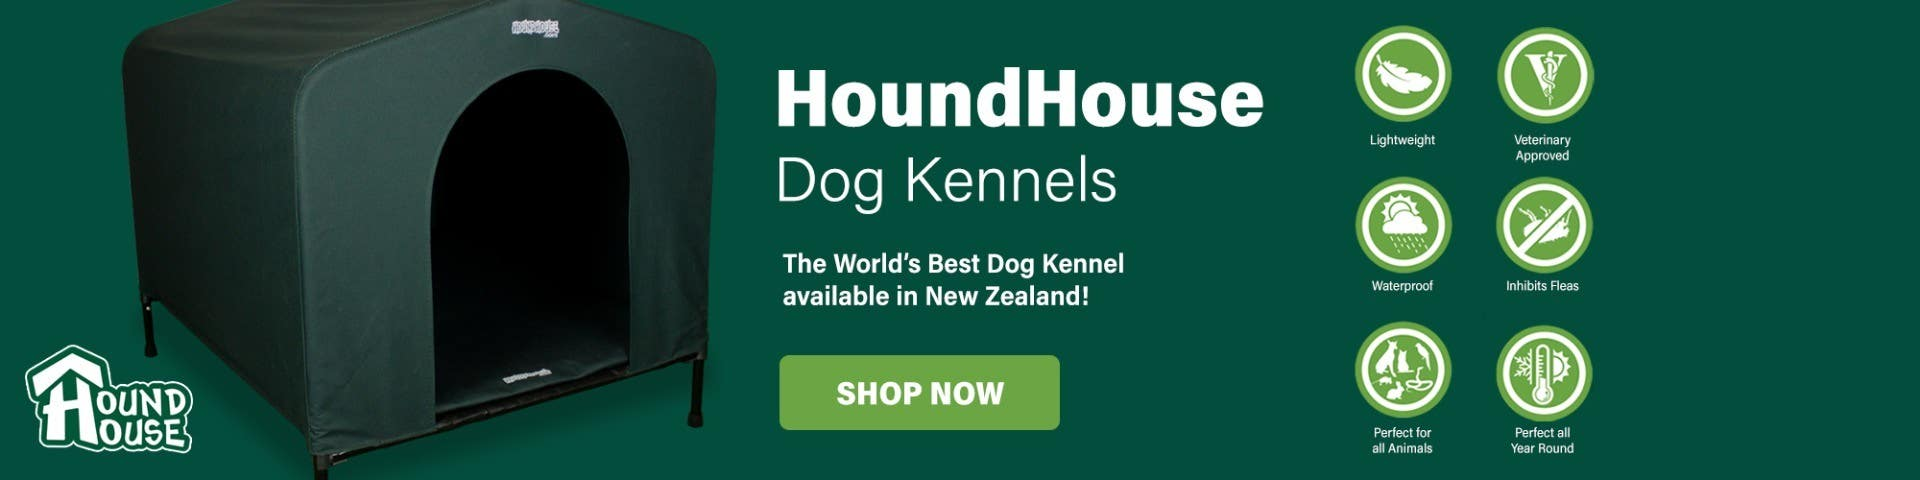 HoundHouse Dog Kennels